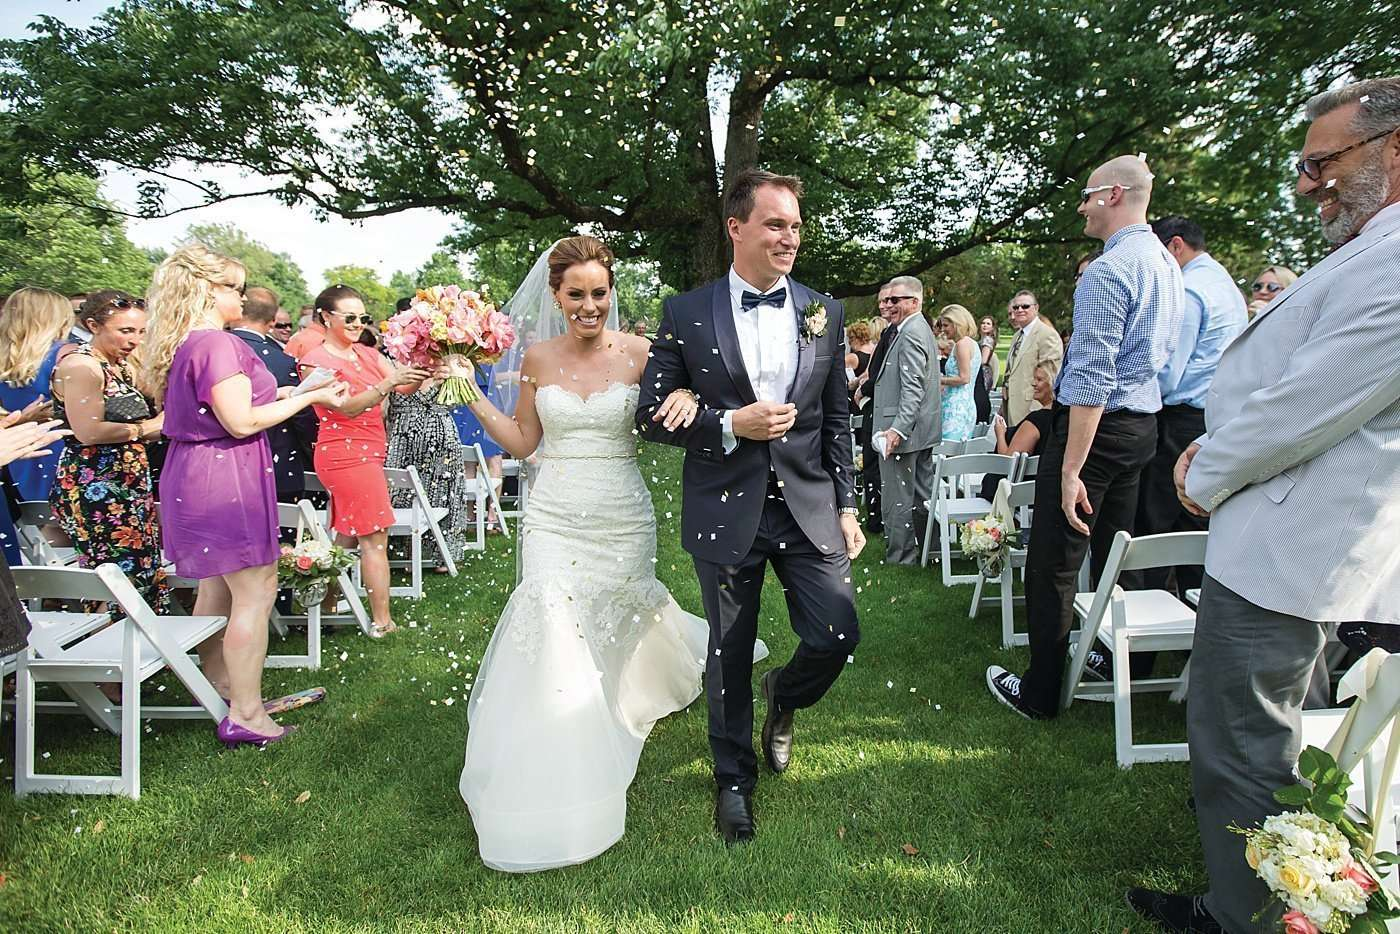 Kim & Lee | A Summer Wedding at Brookside Country Club 2